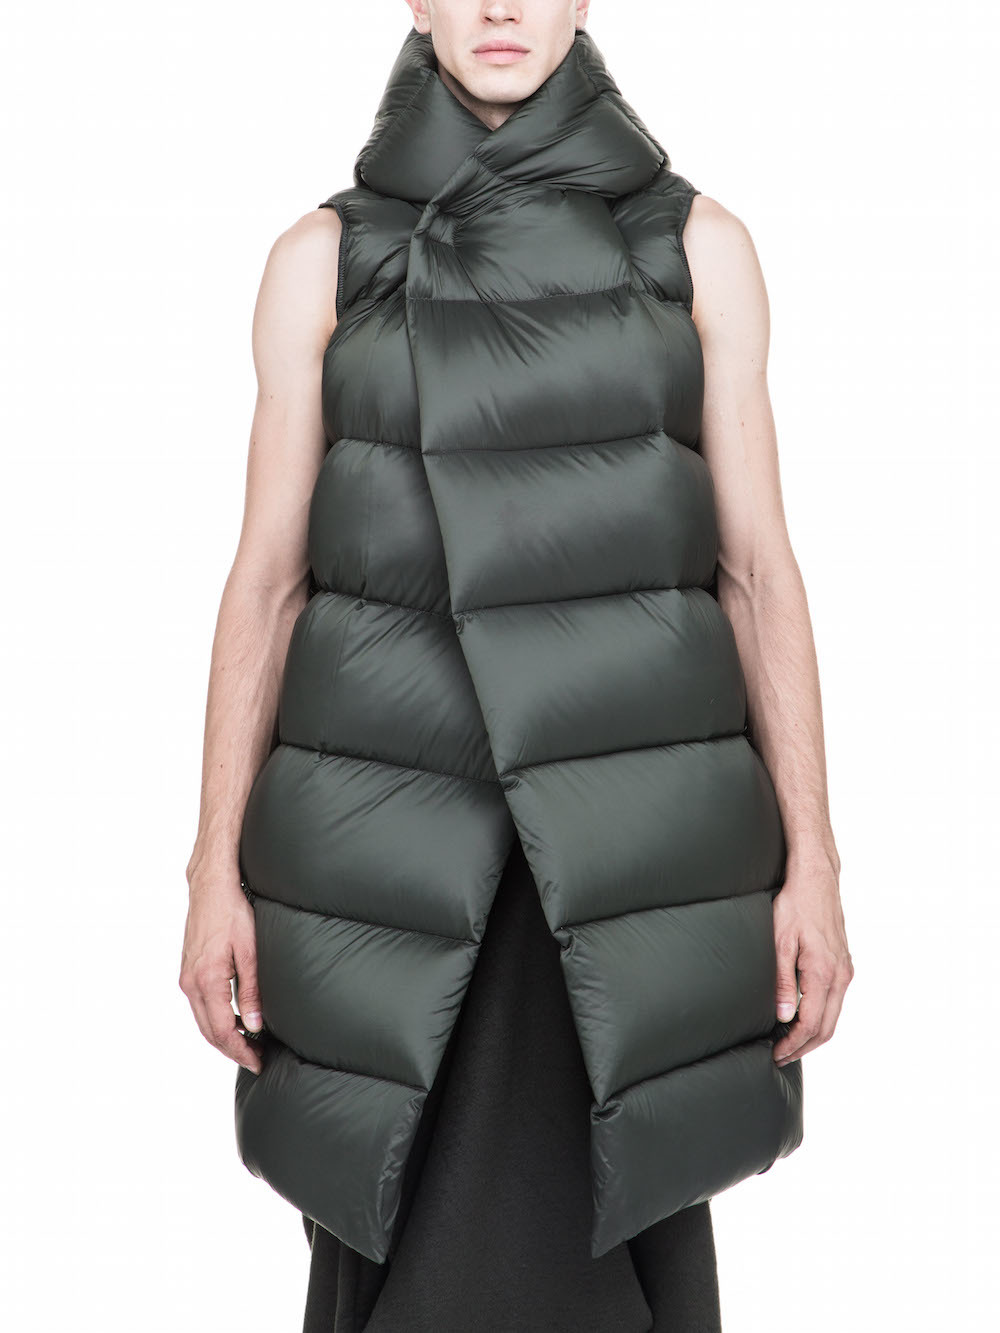 RICK OWENS FALL WINTER LINER IN GREEN